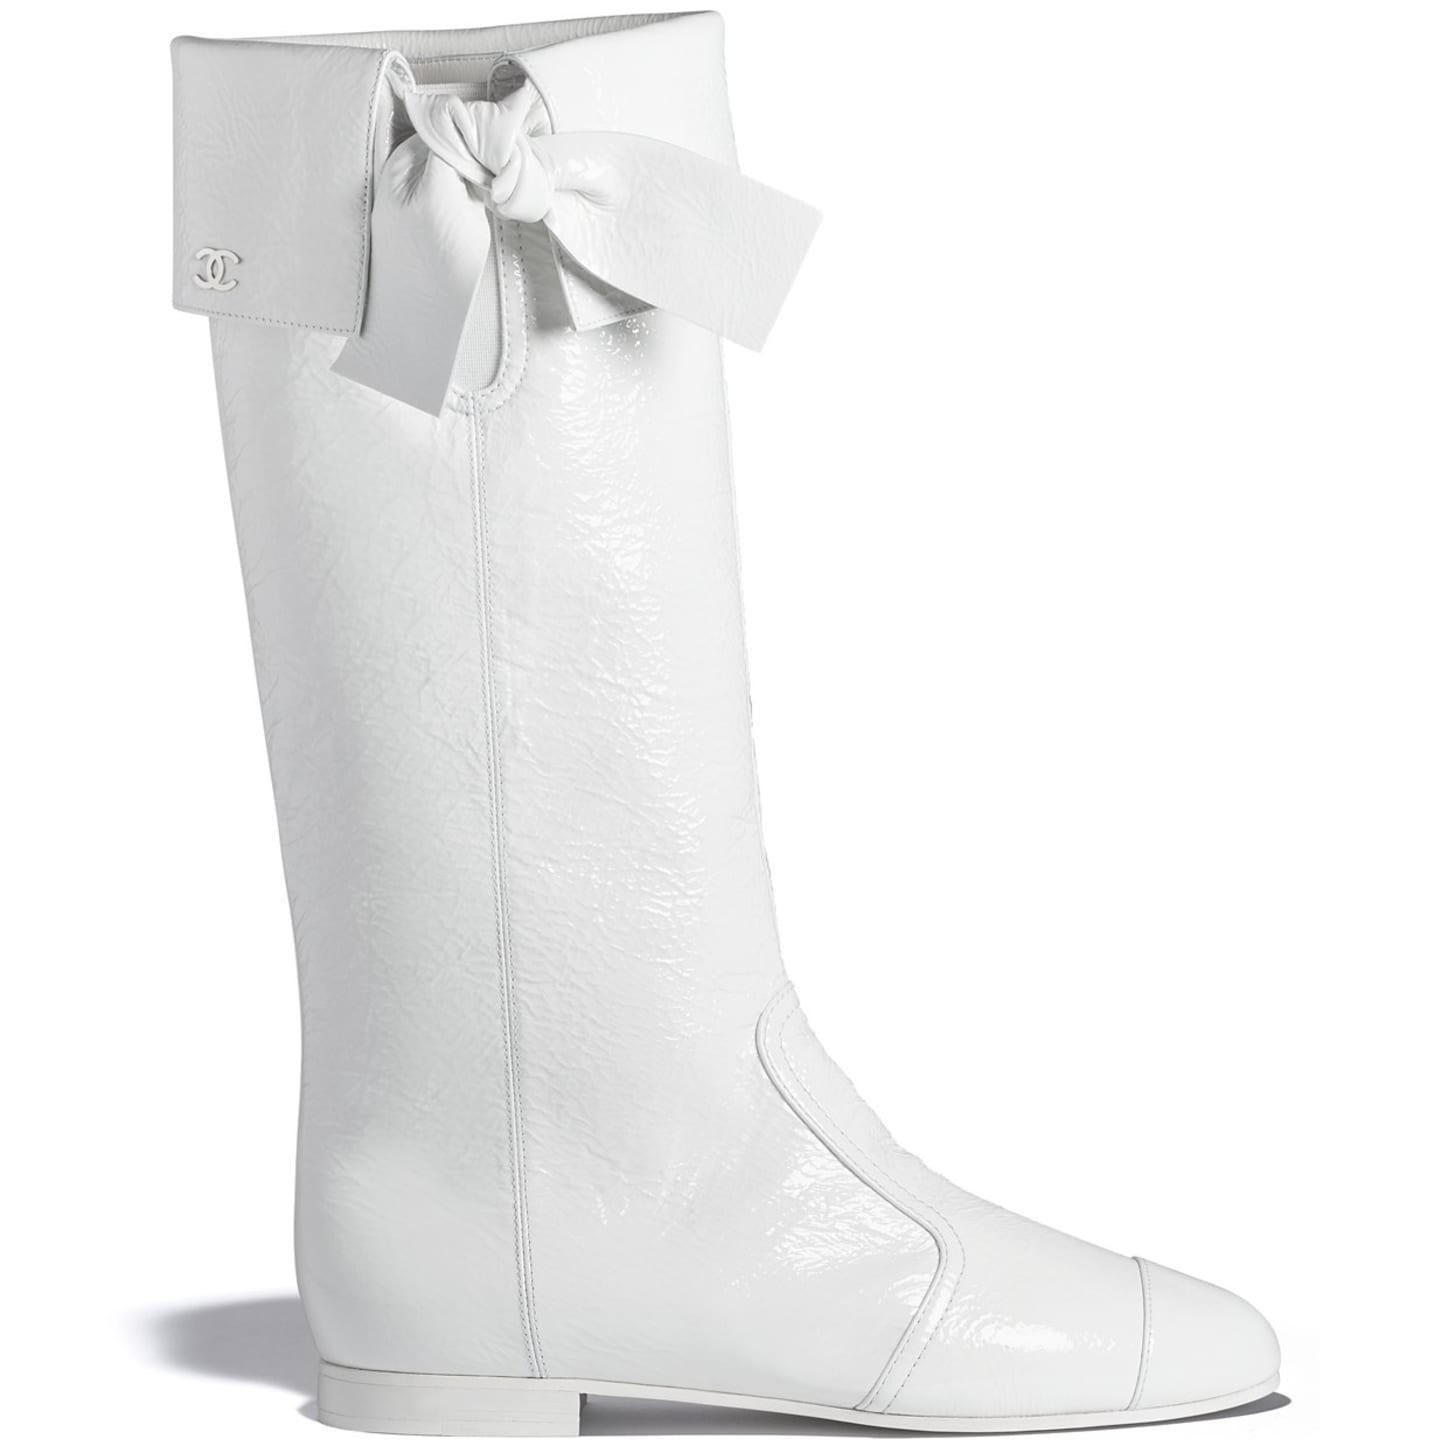 High Boots - White - Crumpled Lambskin - Default view - see standard sized version